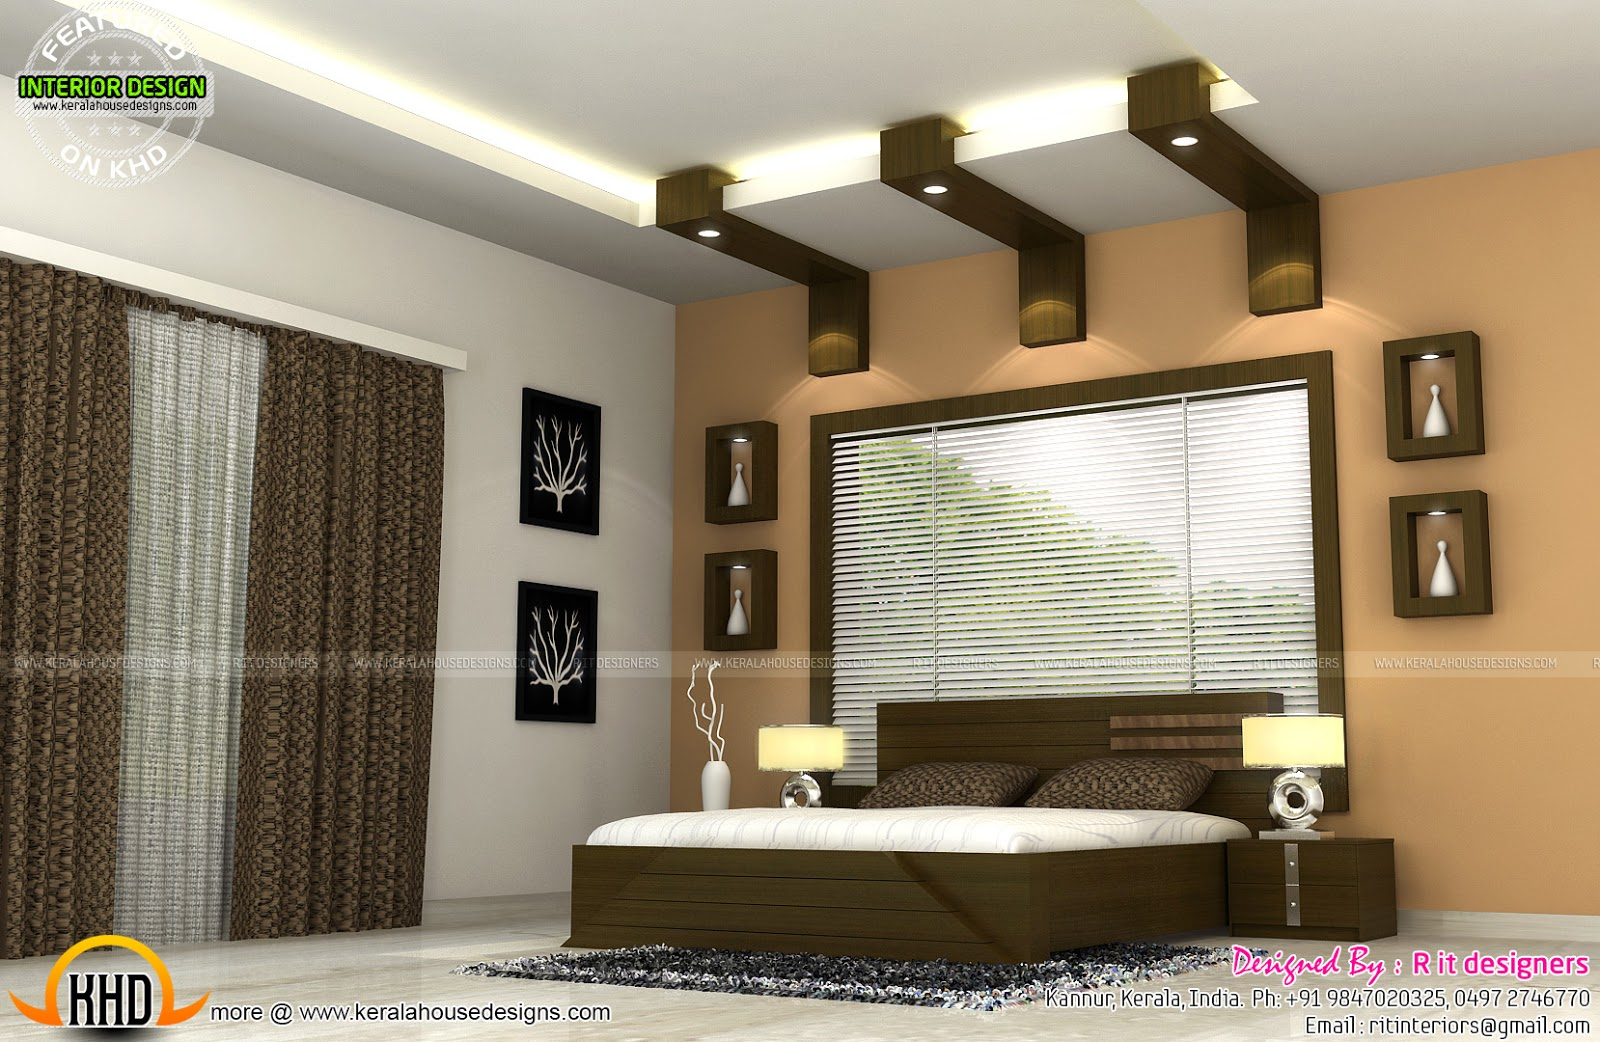 Interiors of bedrooms and kitchen kerala home design and for Interior design 70s house